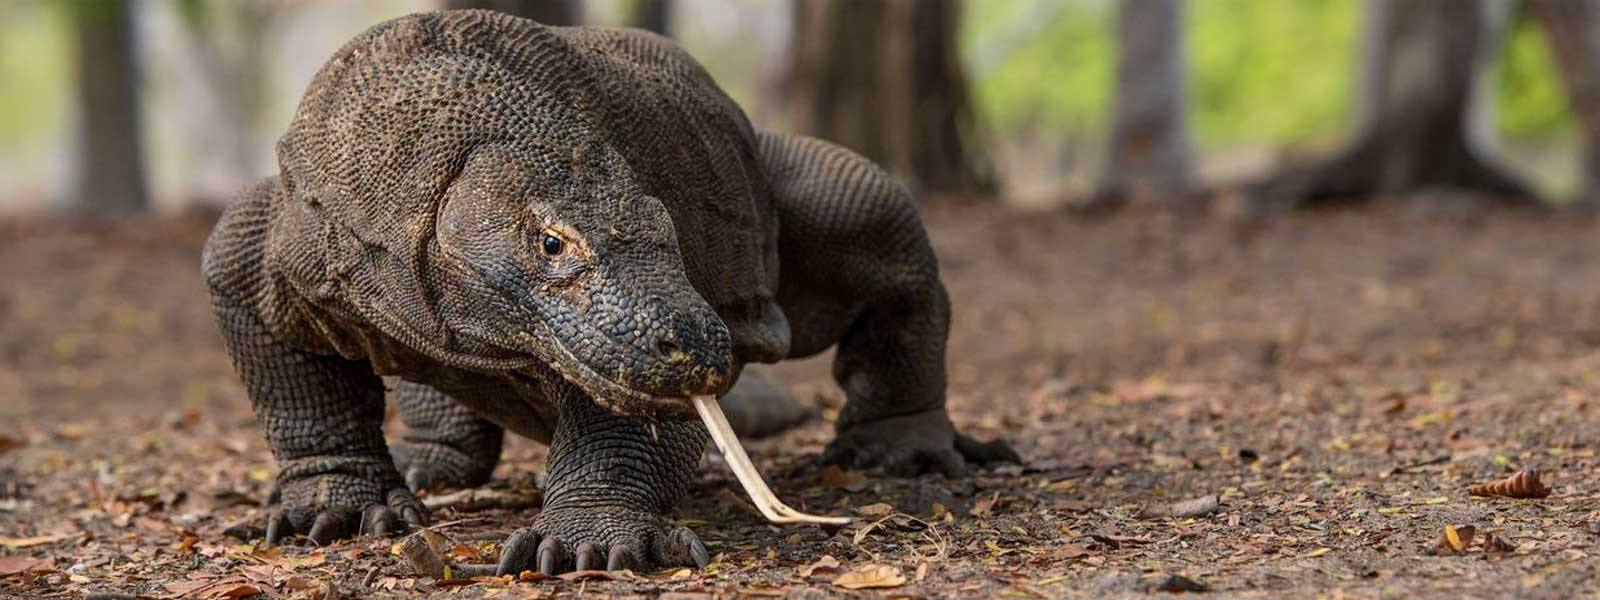 Komodo dragon hunting